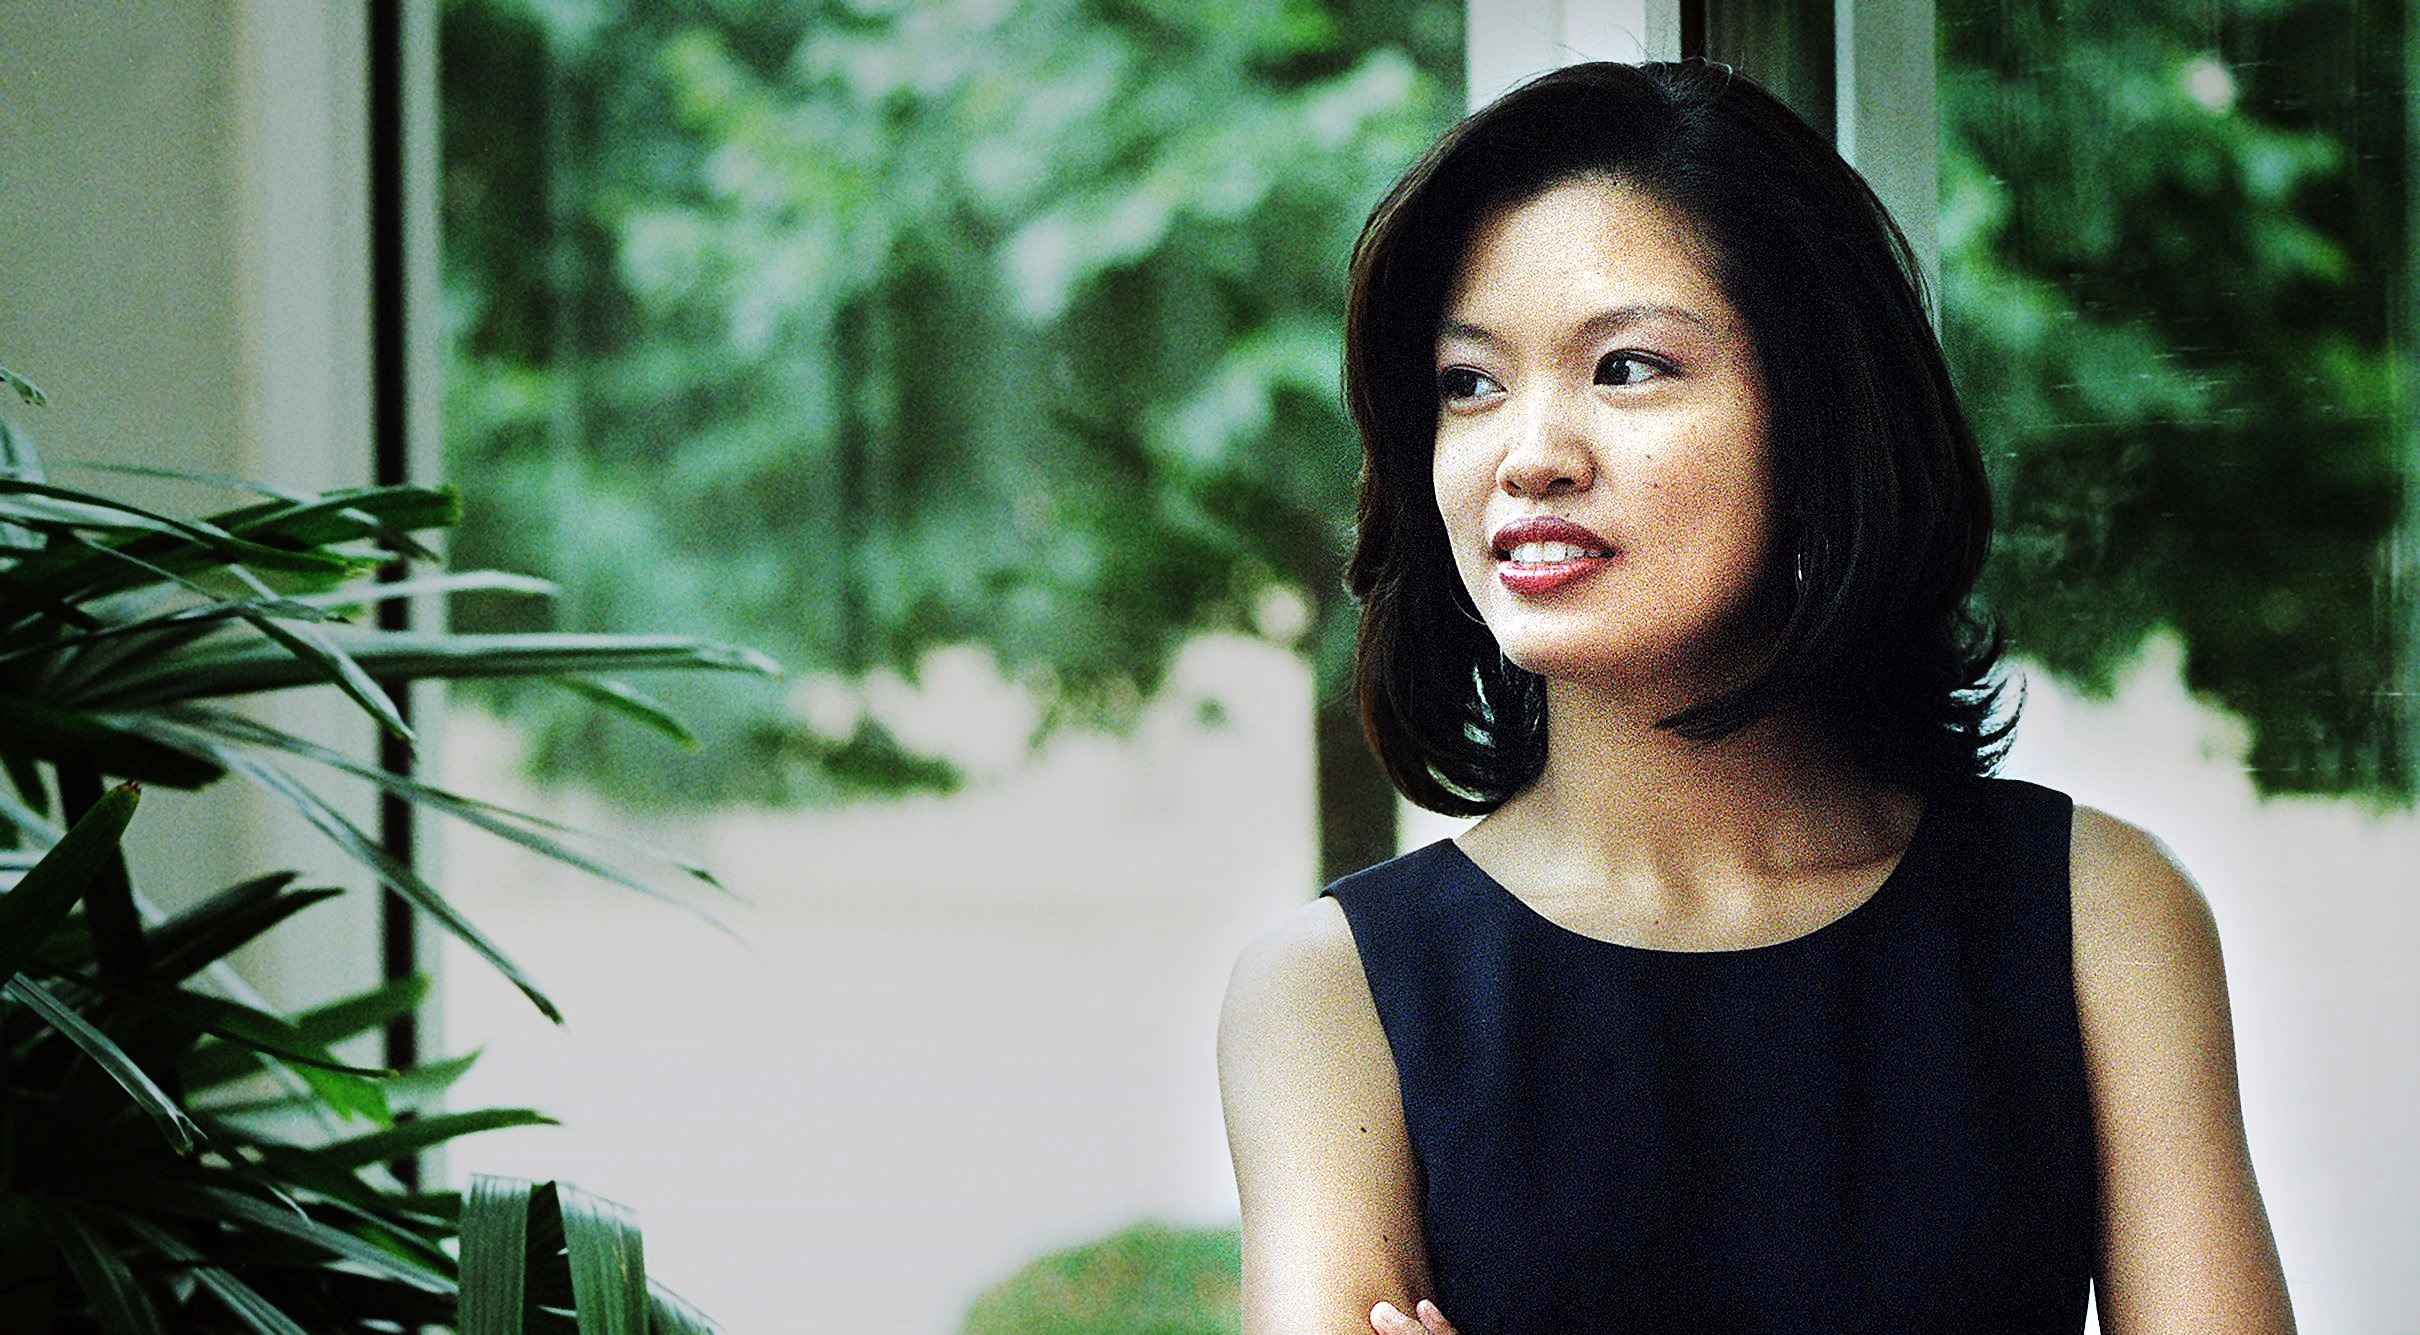 Michelle Malkin looks attractive in black dress and short hair